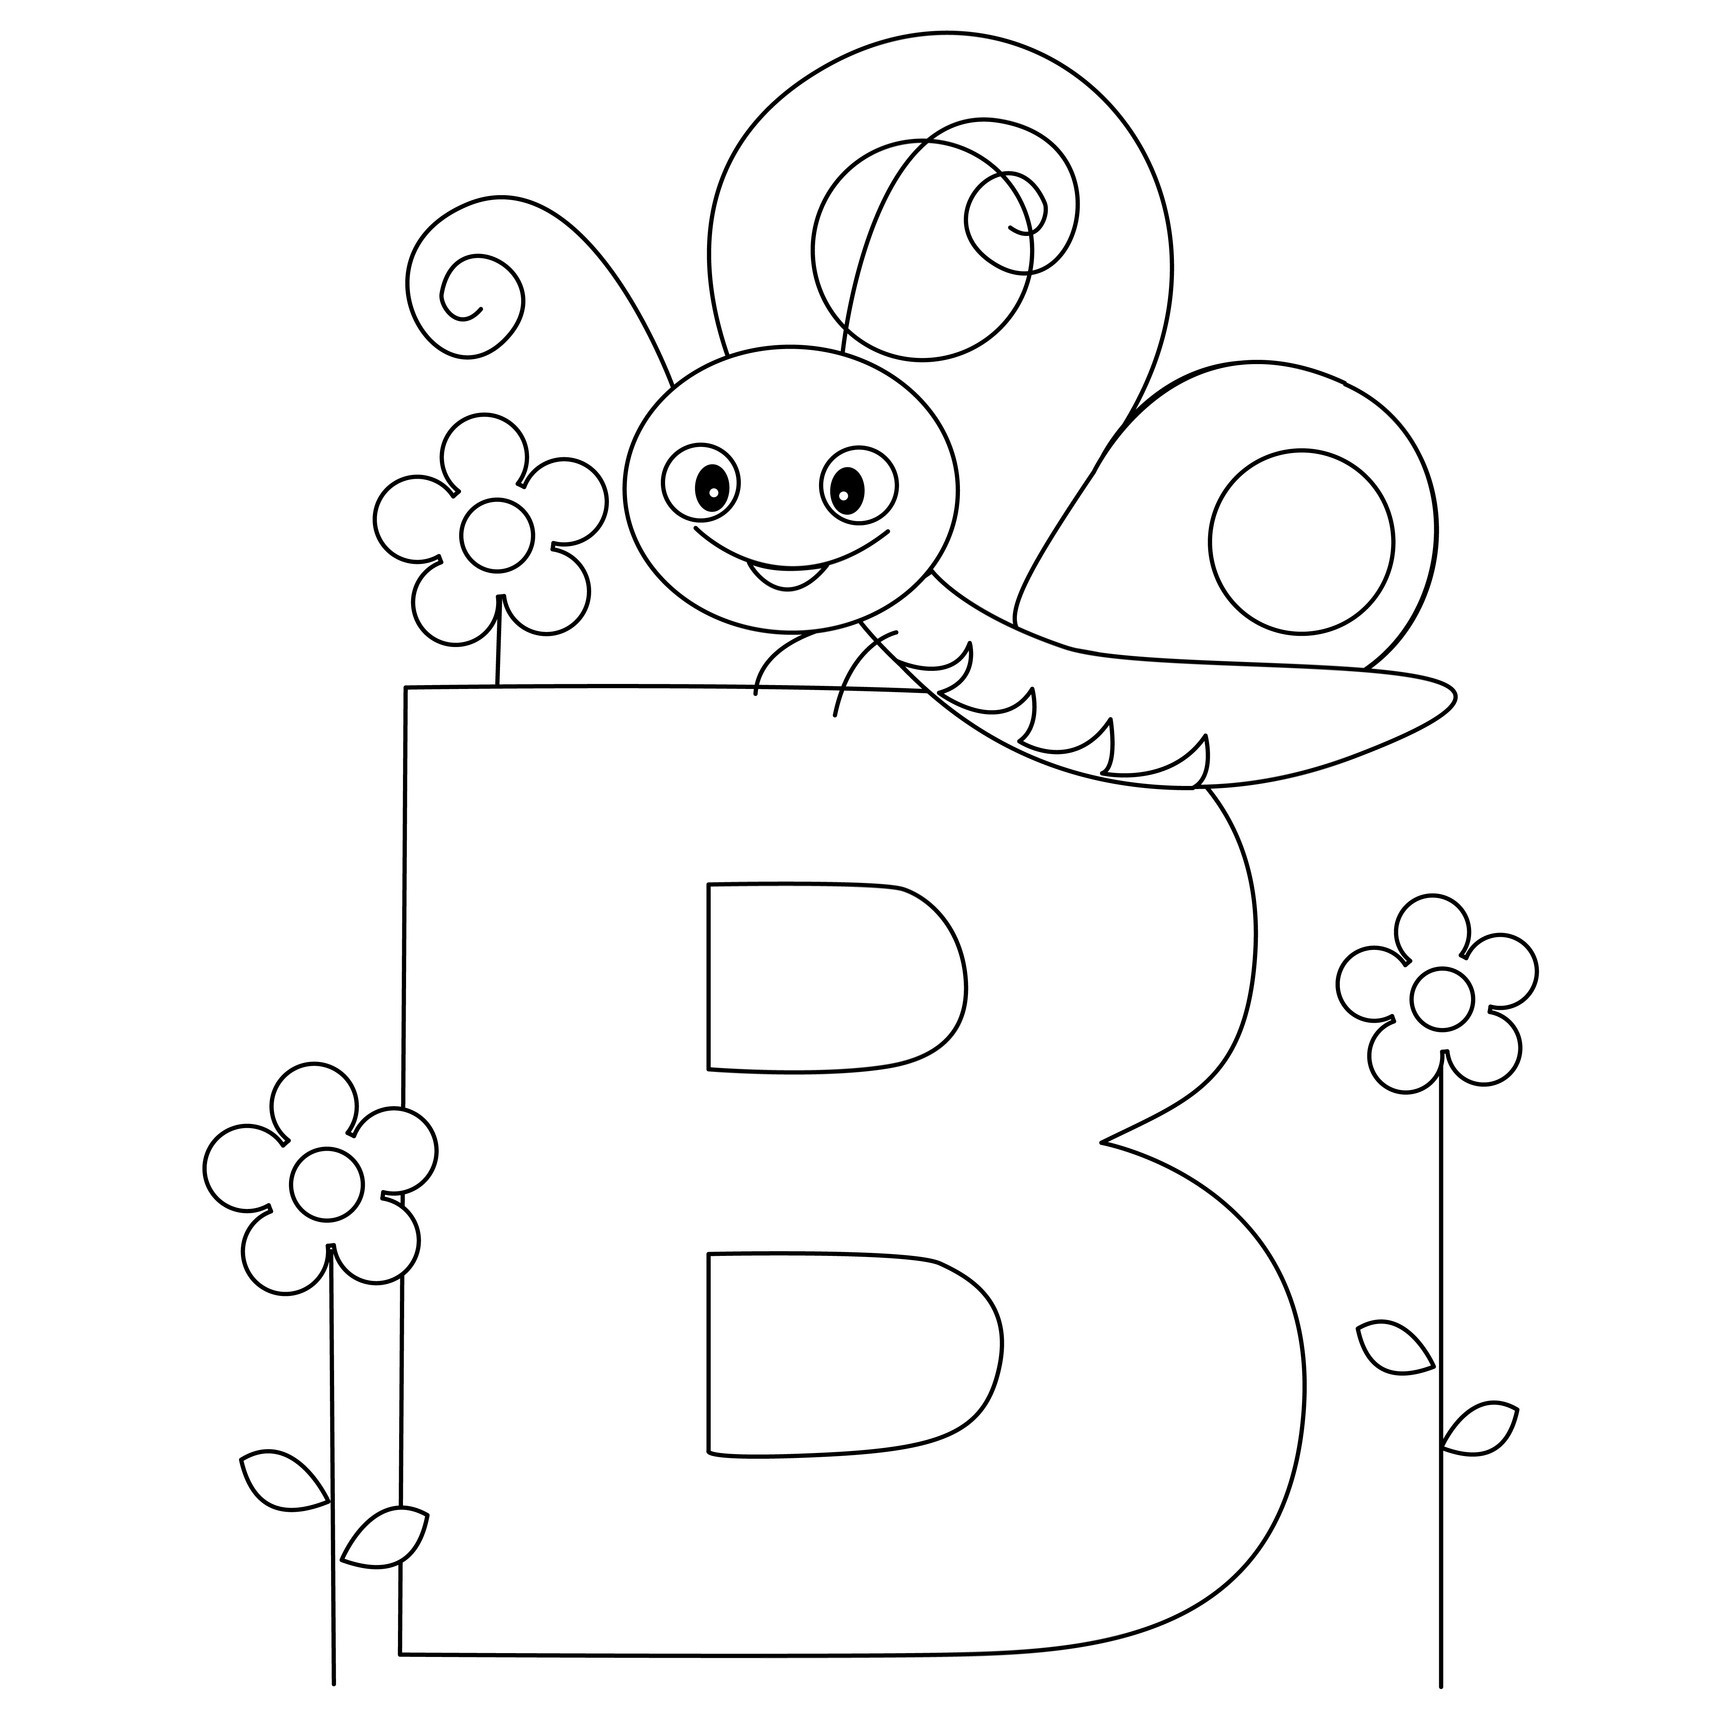 abc coloring page free printable abc coloring pages for kids abc page coloring